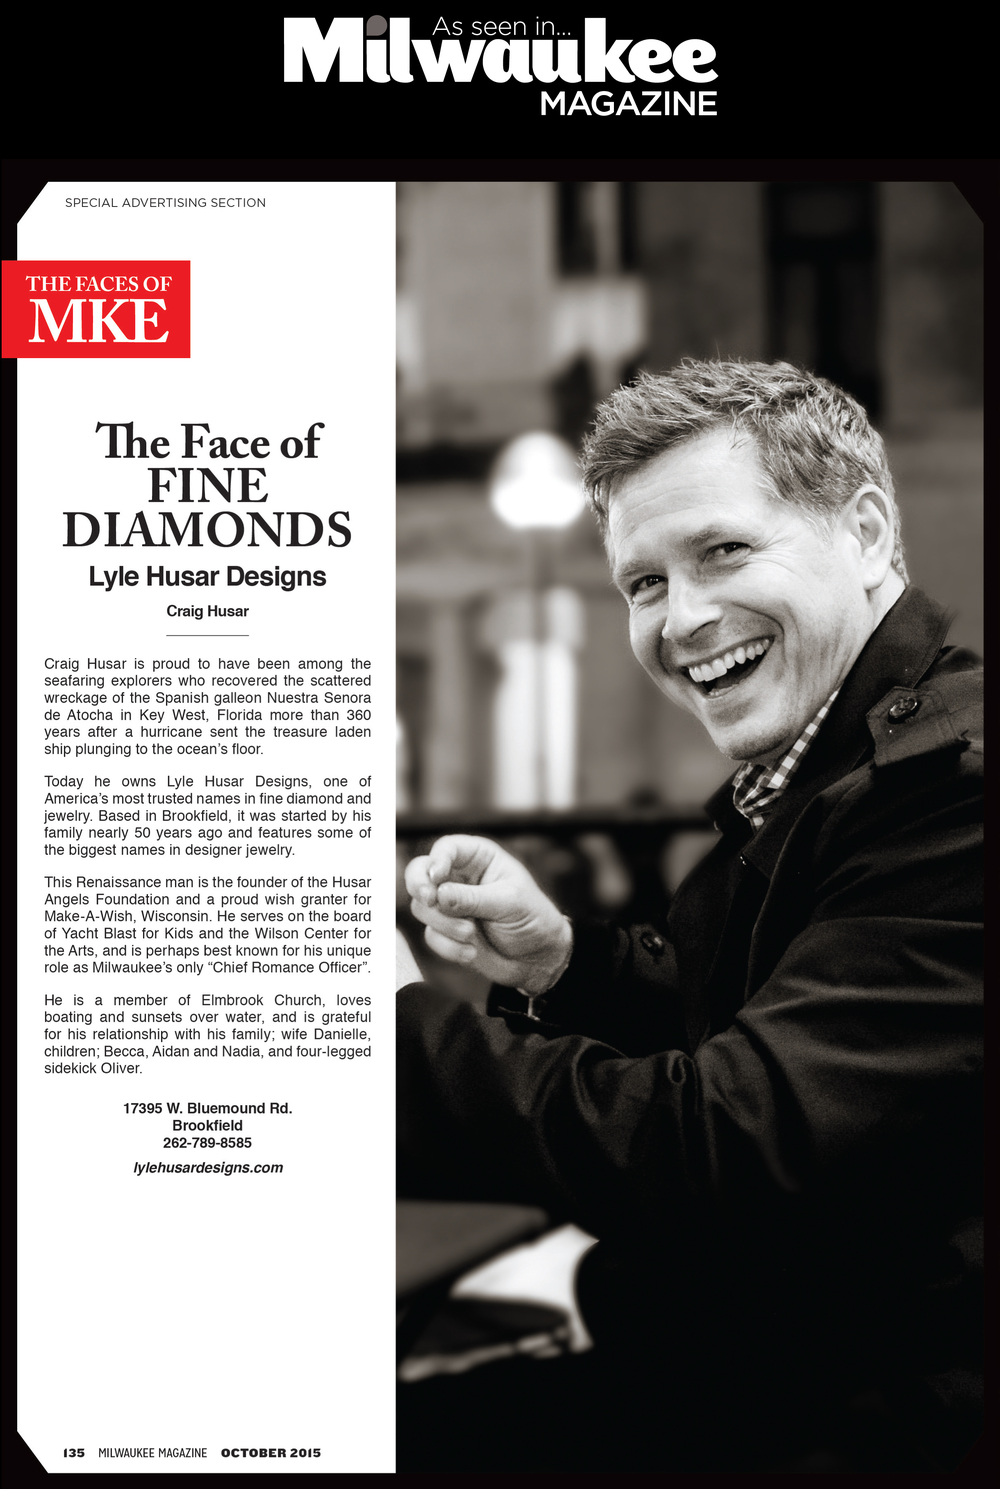 Craig Husar, The Face of Fine Diamonds, As Seen In Milwaukee Magazine